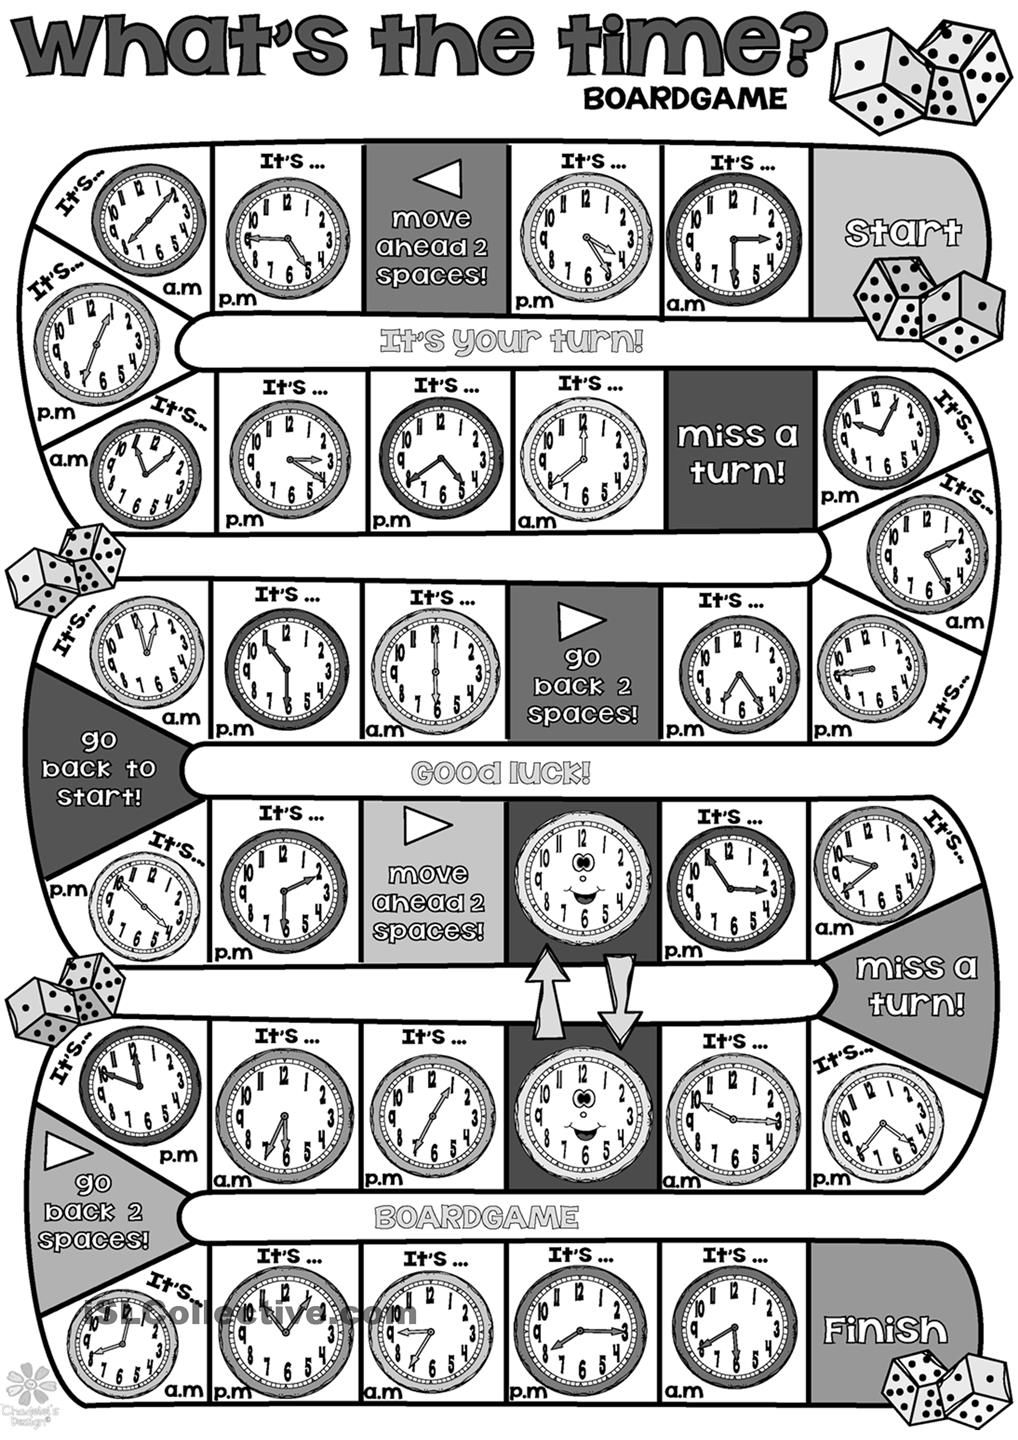 Whats the time BOARDGAME- Repinned by Chesapeake College Adult Ed. We offer free classes on the Eastern Shore of MD to help you earn your GED - H.S. Diploma or Learn English (ESL). www.Chesapeake.edu